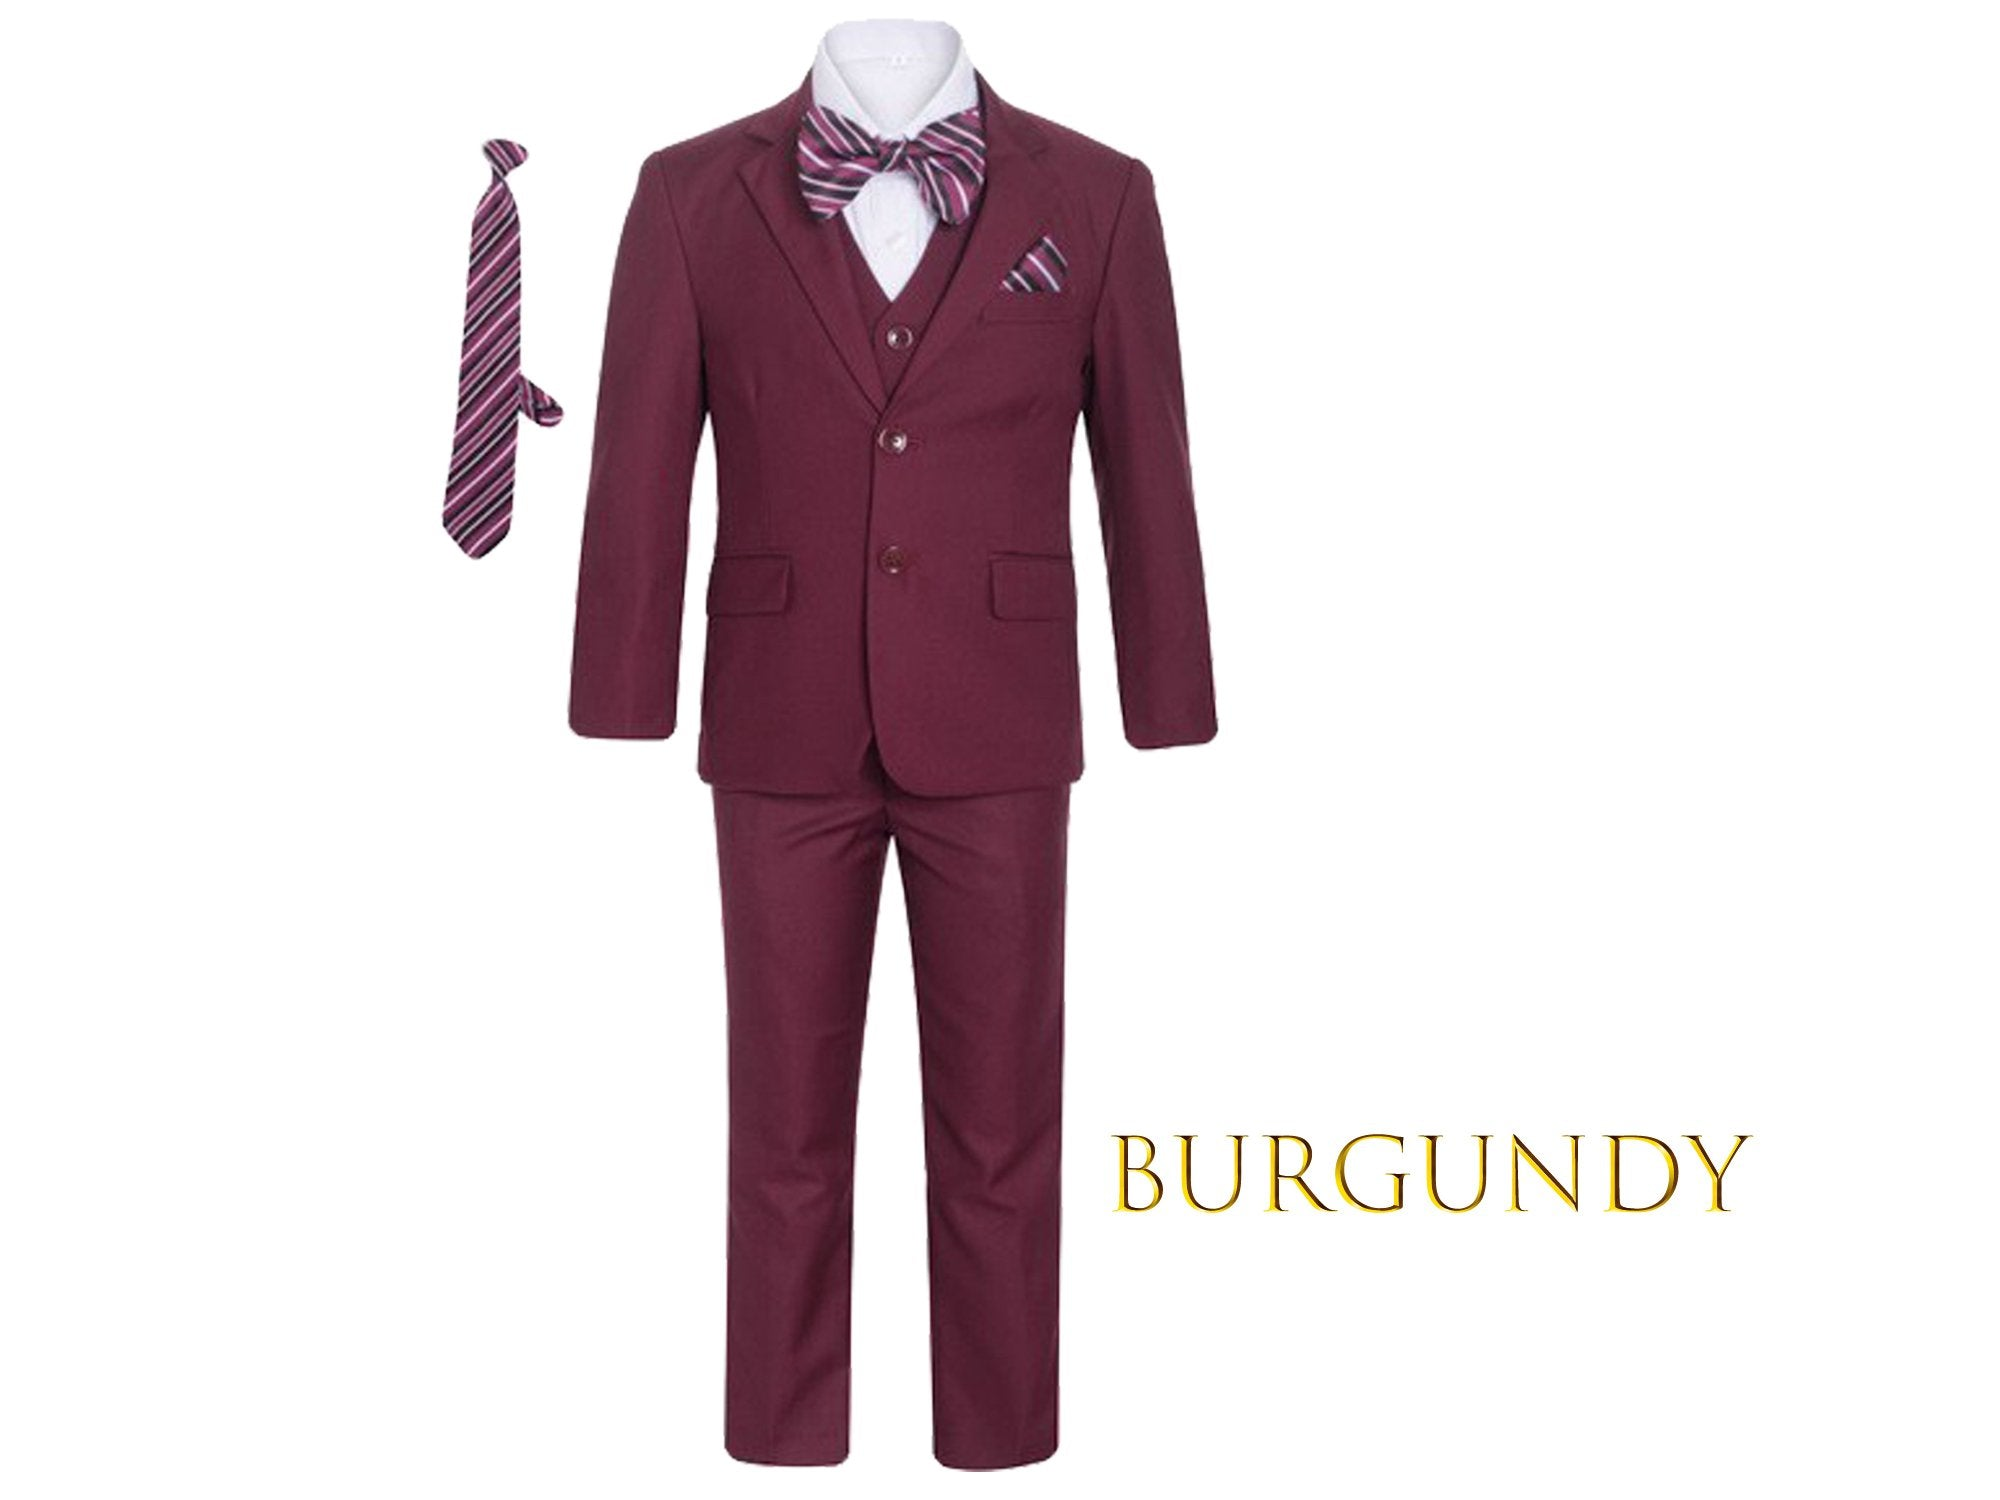 Boys Premium Clip On Necktie For Suits and Tuxedos